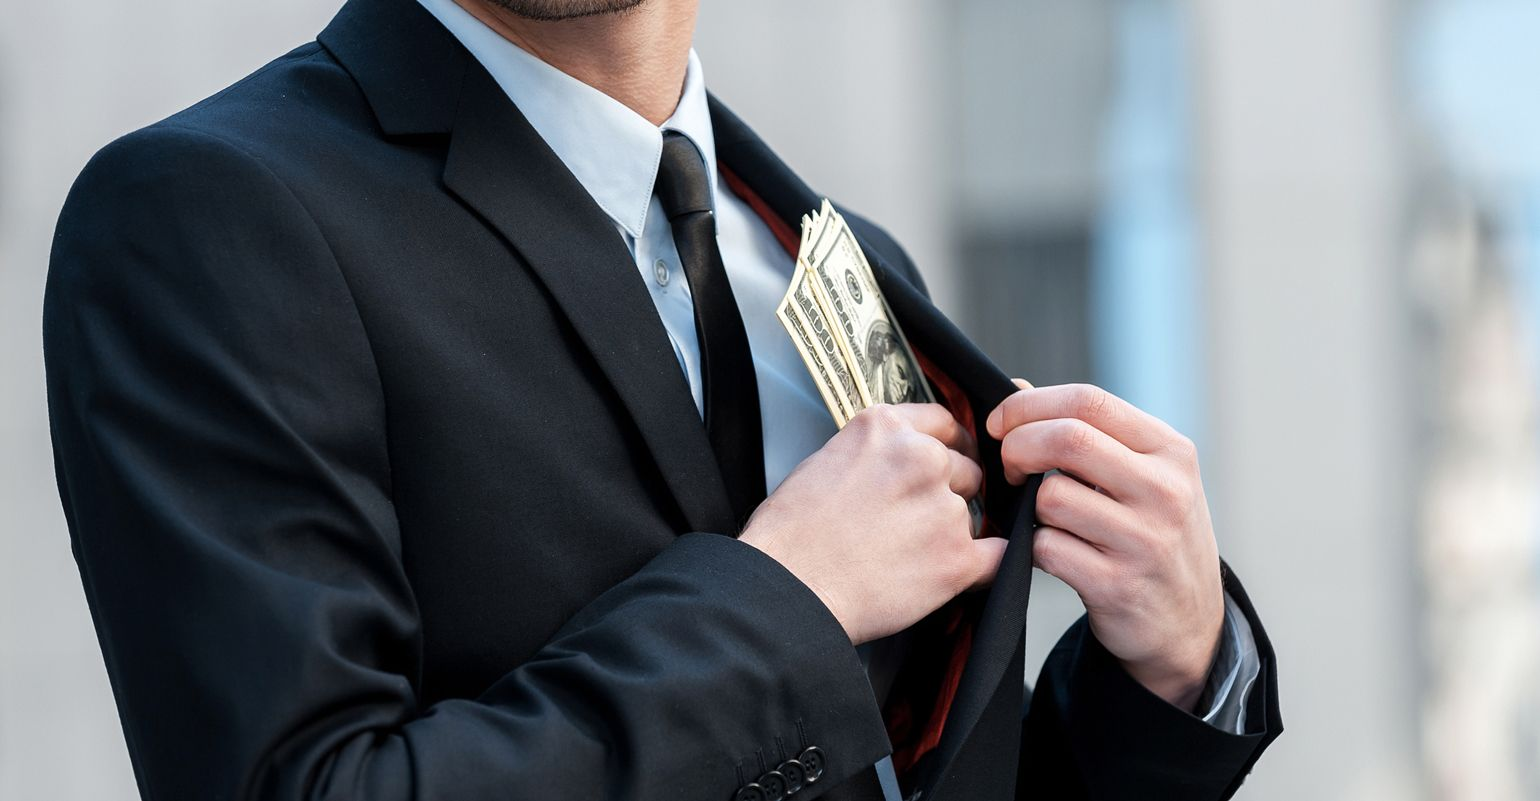 Recognizing the signs of embezzlement (Liz Barrett